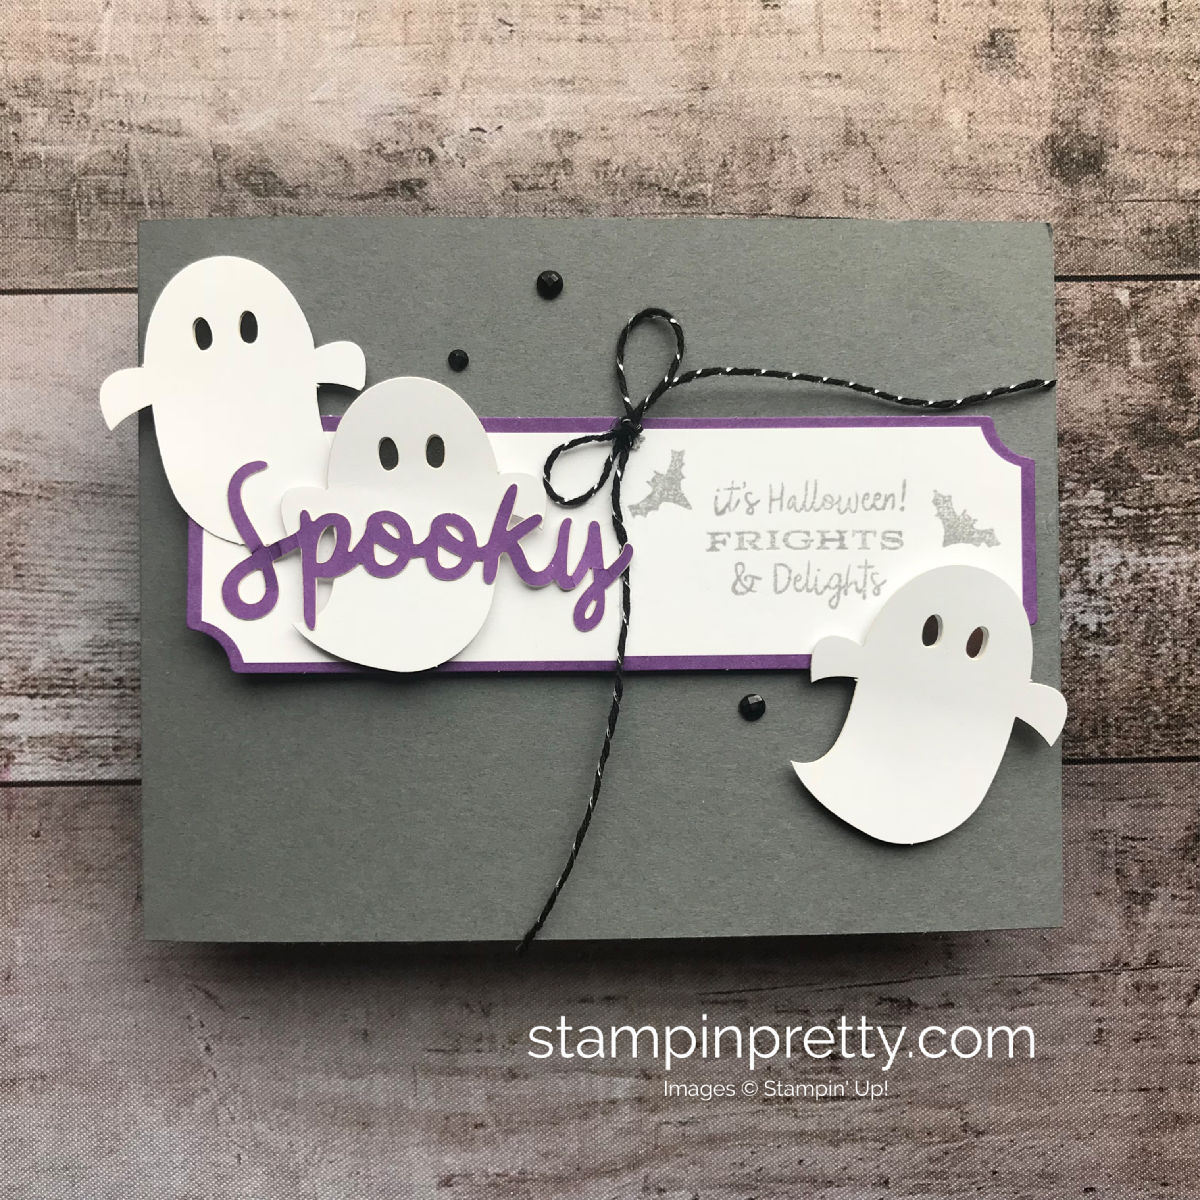 September 2018 Paper Pumpkin Alternate Project by Mary Fish, Stampin' Pretty!  Spooky Halloween Frights & Delights. #maryfish #stampinpretty